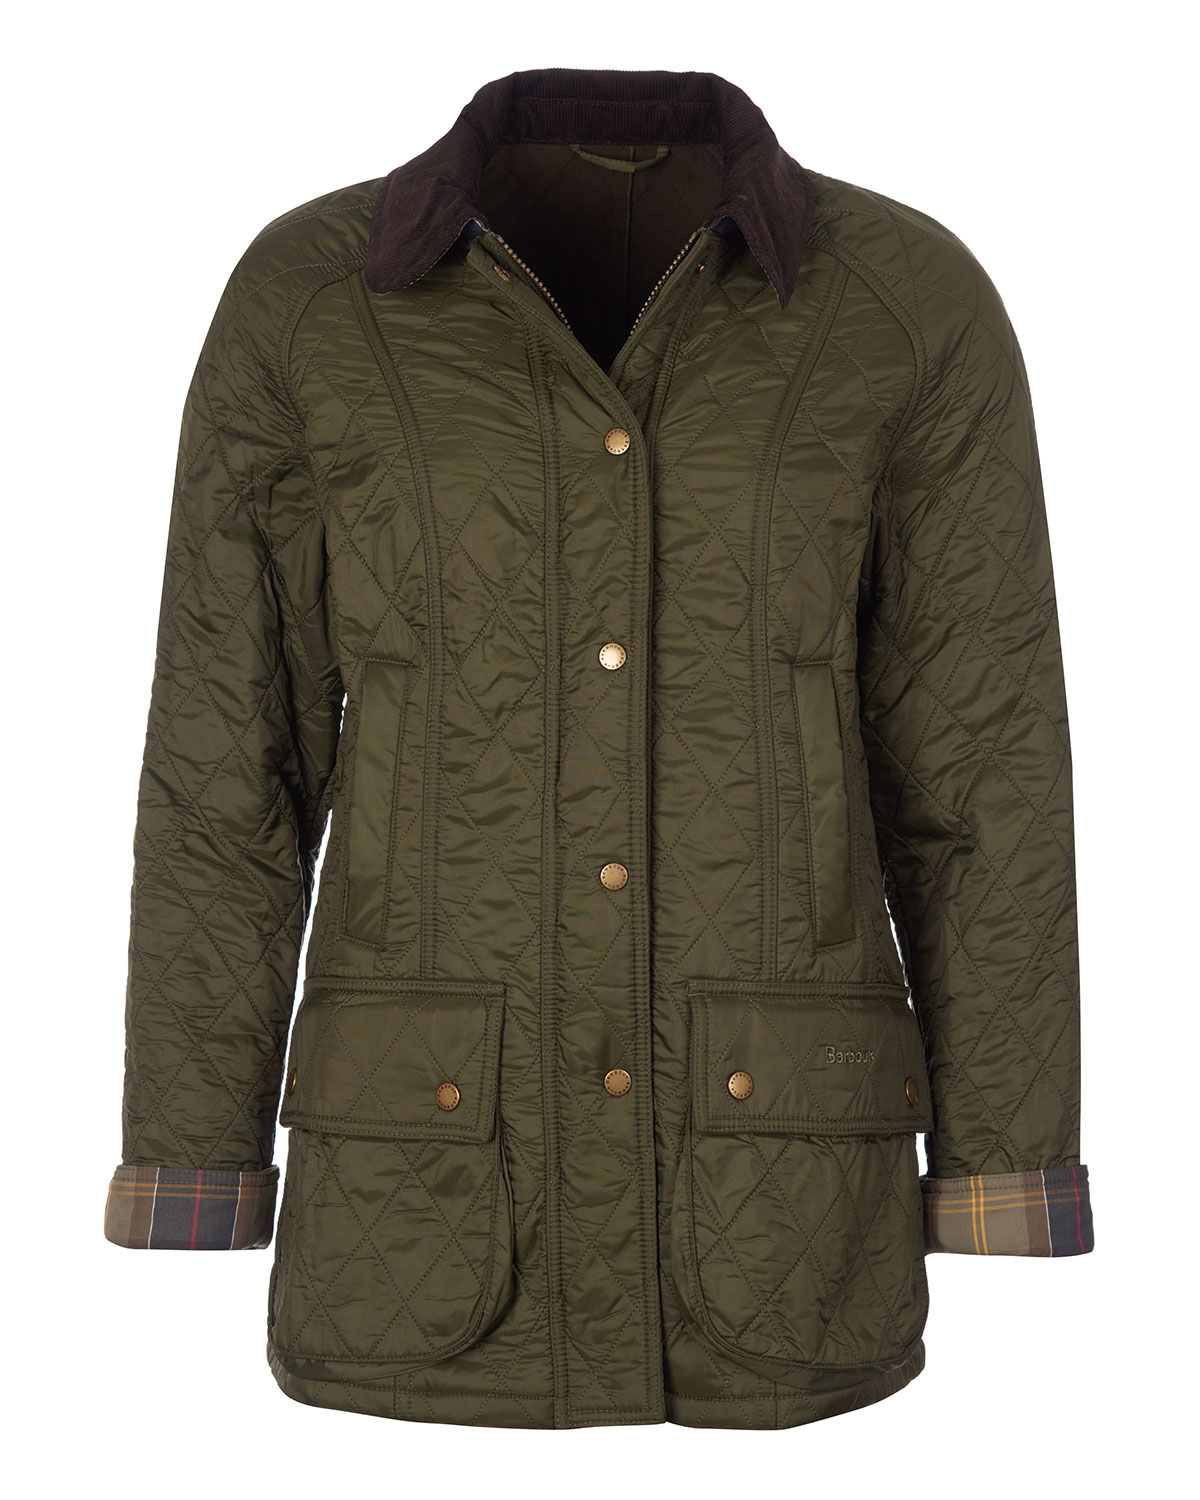 Barbour Beadnell Jacket in Diamond Polarquilt